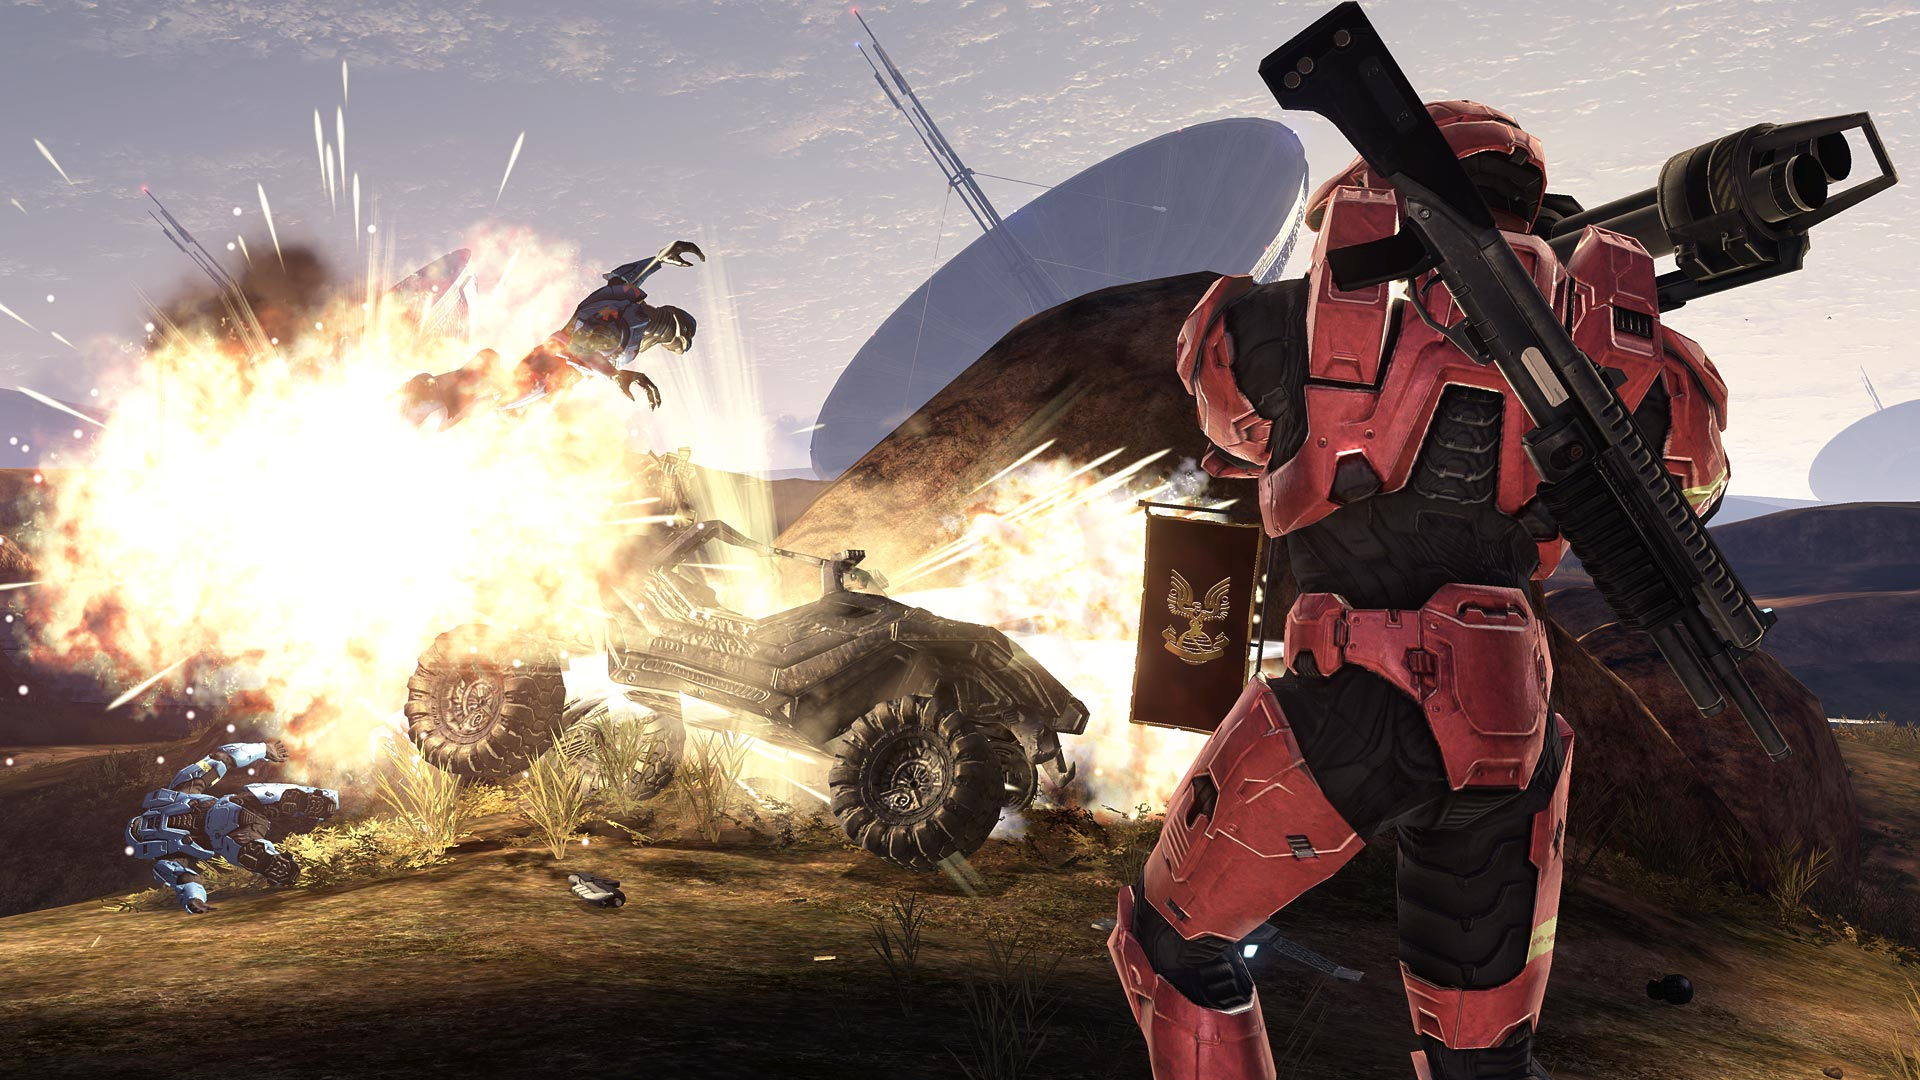 Halo 3 Heroic Map Pack - an Early Look